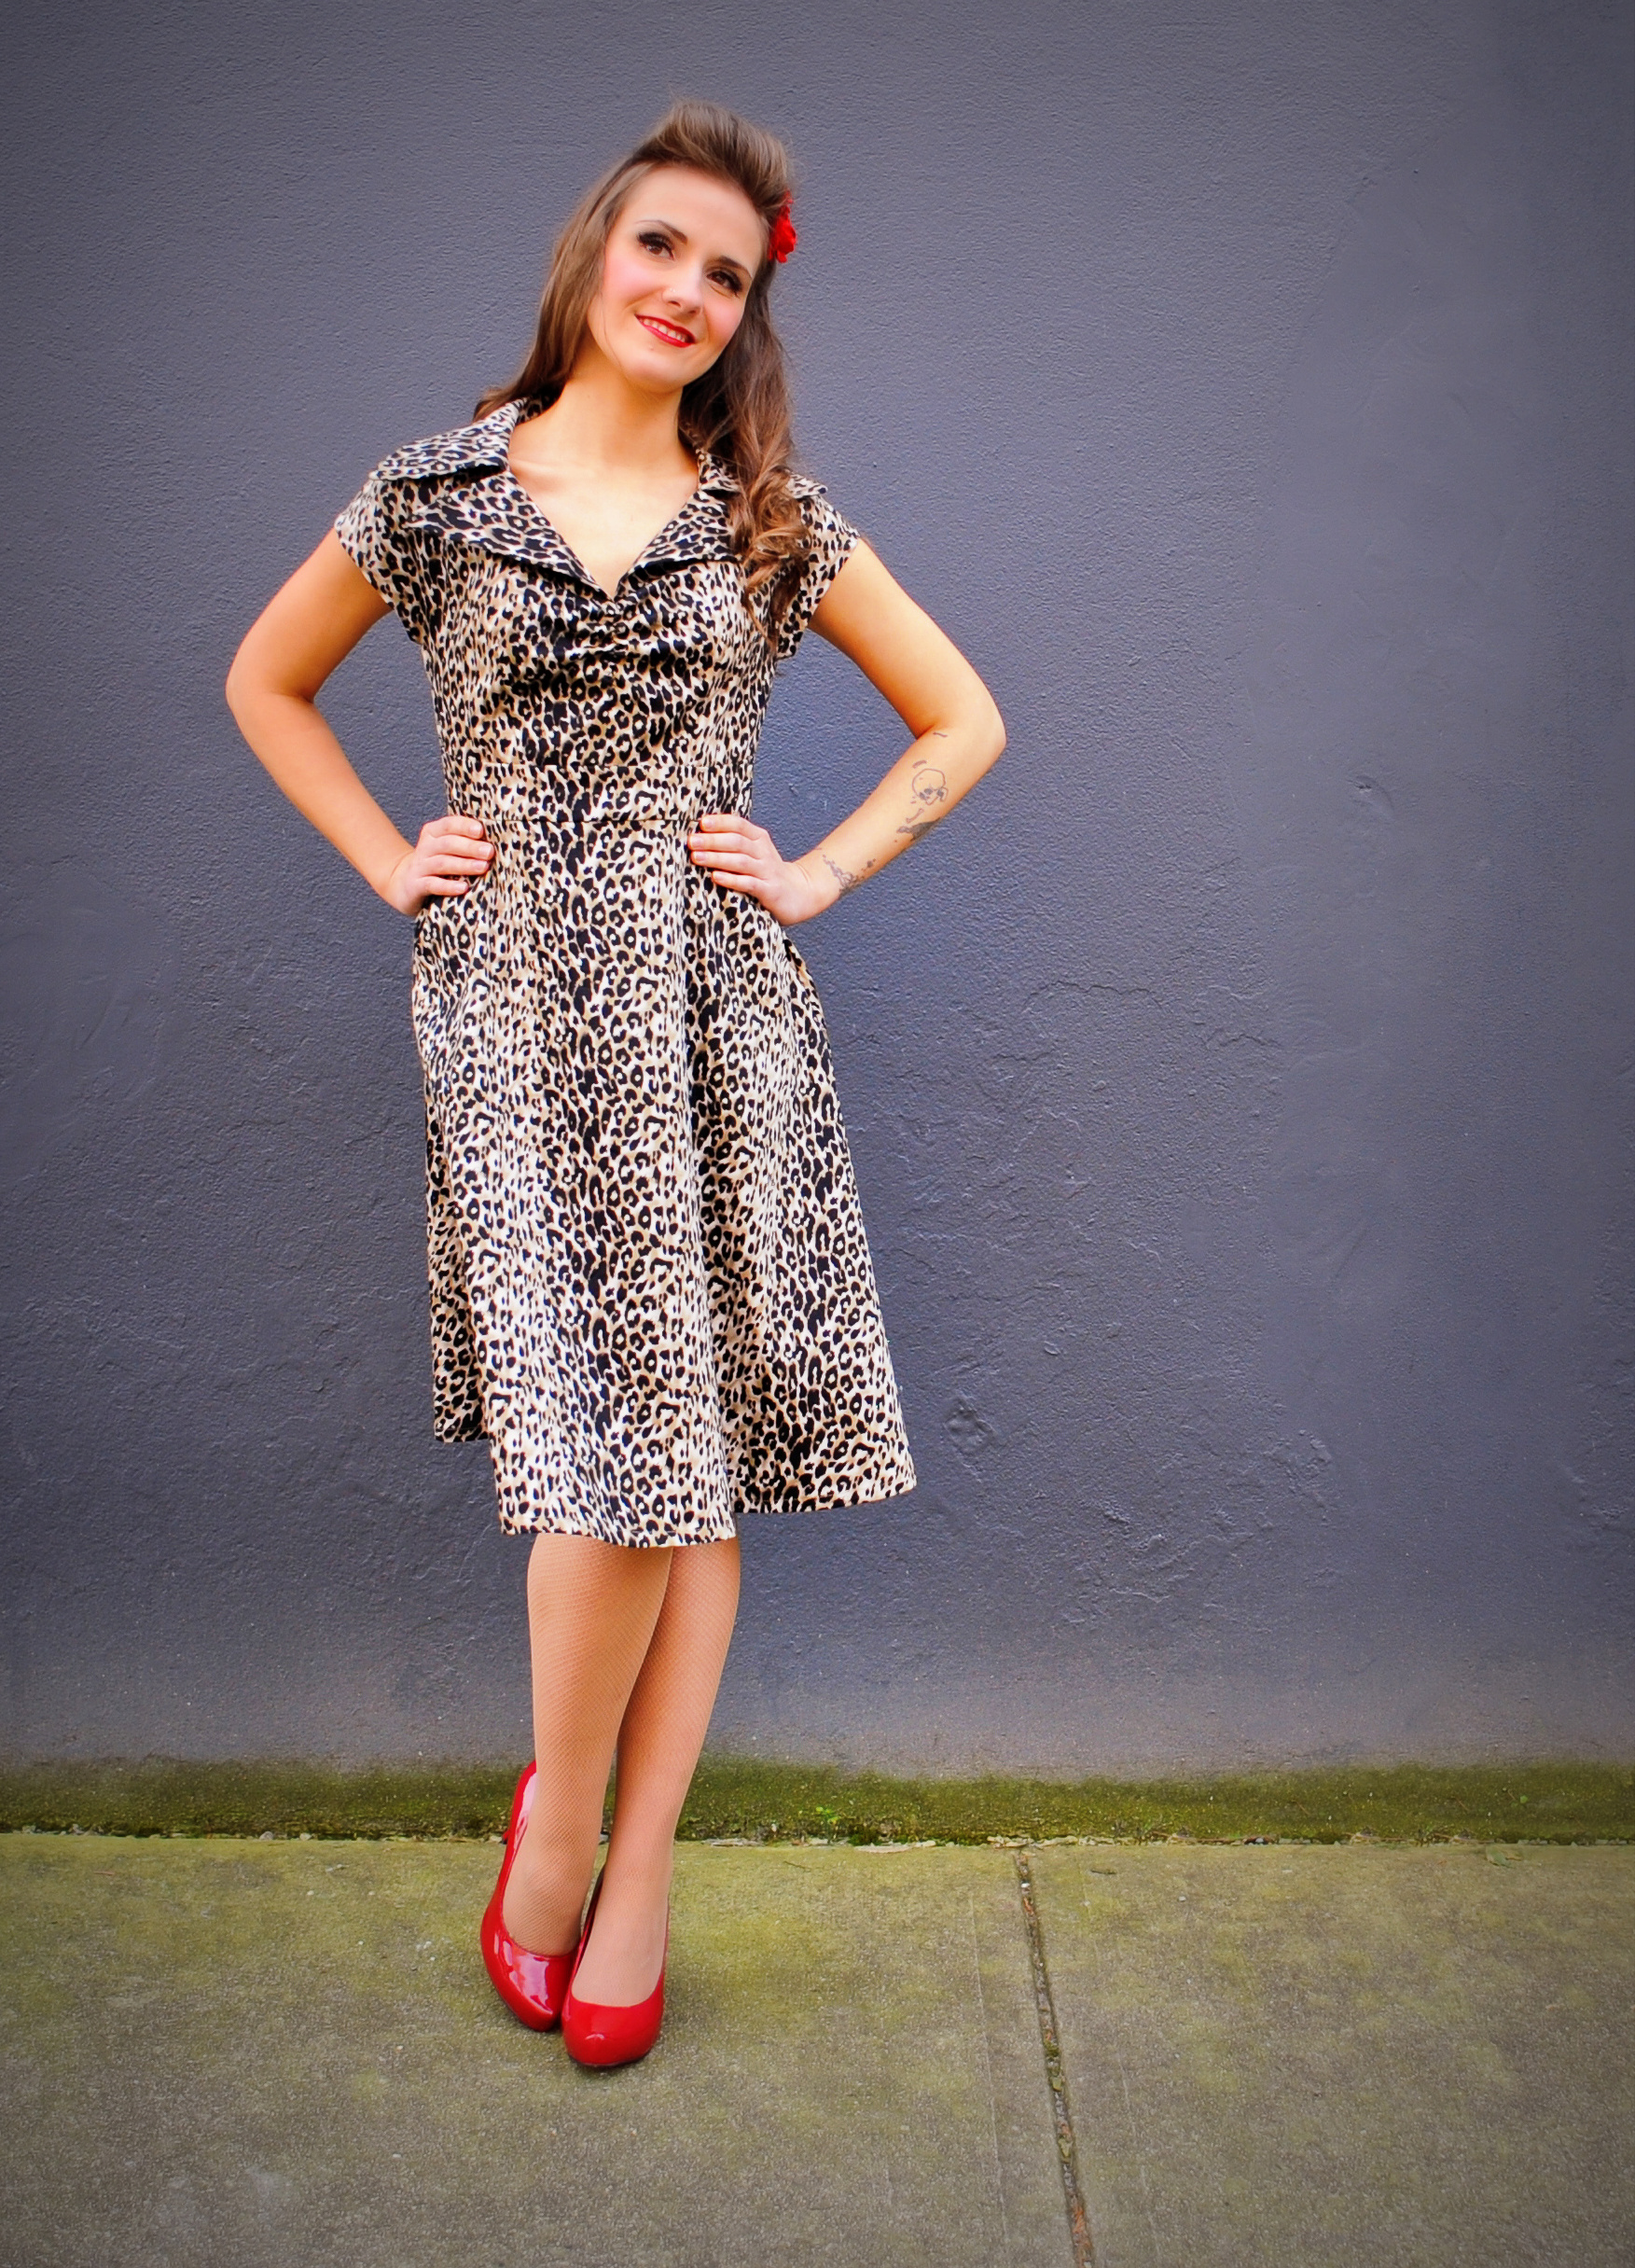 "GenesisSize: Extra-SmallWearing: Paige Dress in Gold LeopardMeasurements: Bust 33"", Waist 27"", Hips 38"""